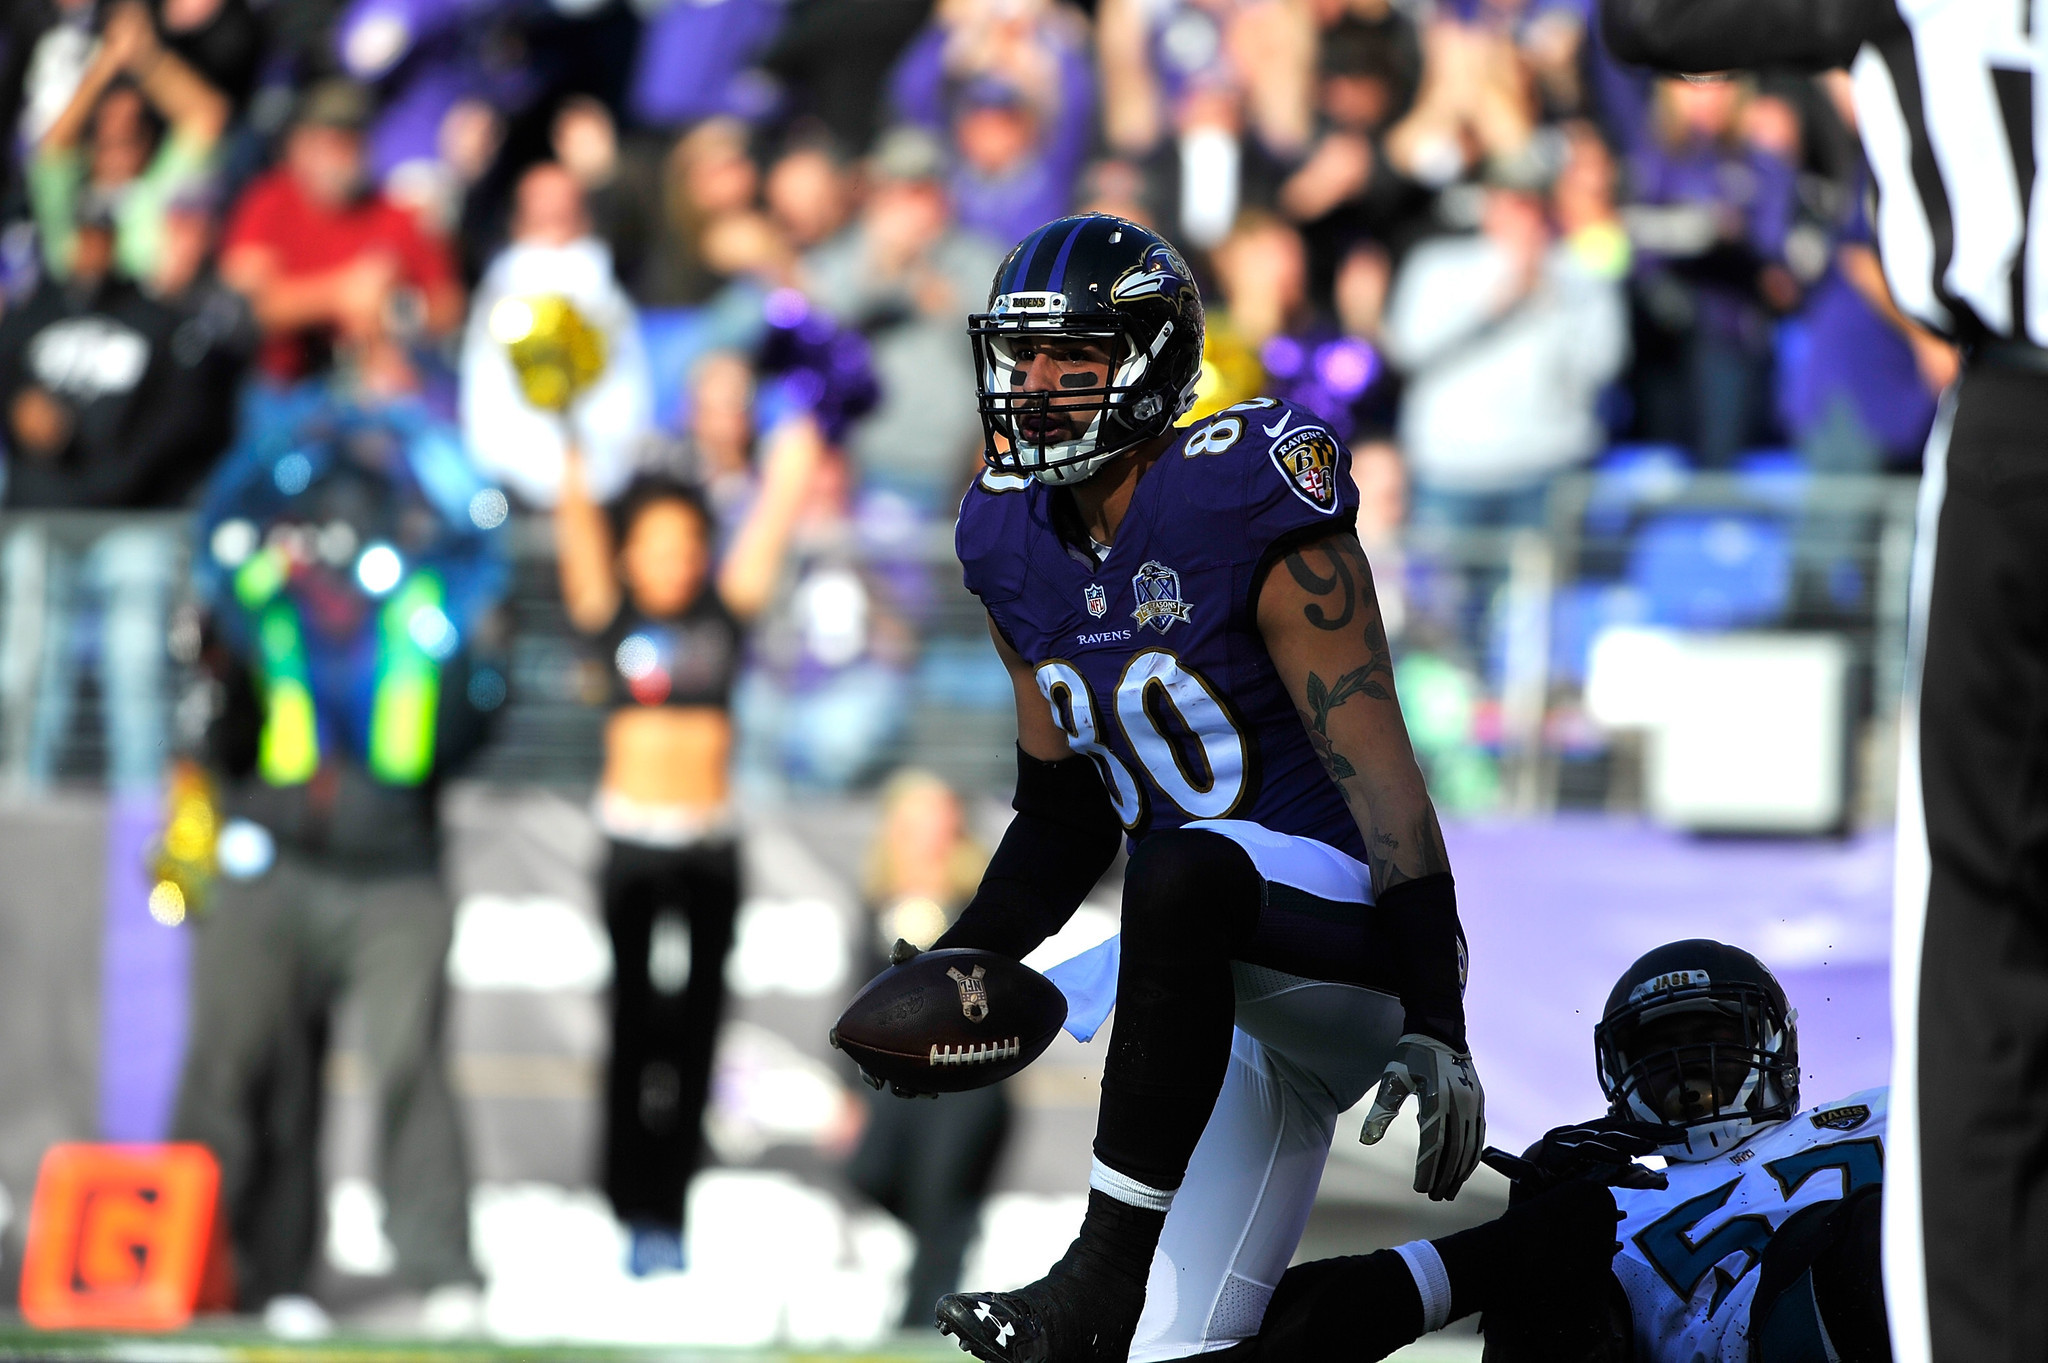 Zach orr retires due to congenital neckspine condition nfl com - Ravens Place Tight End Crockett Gillmore On Injured Reserve